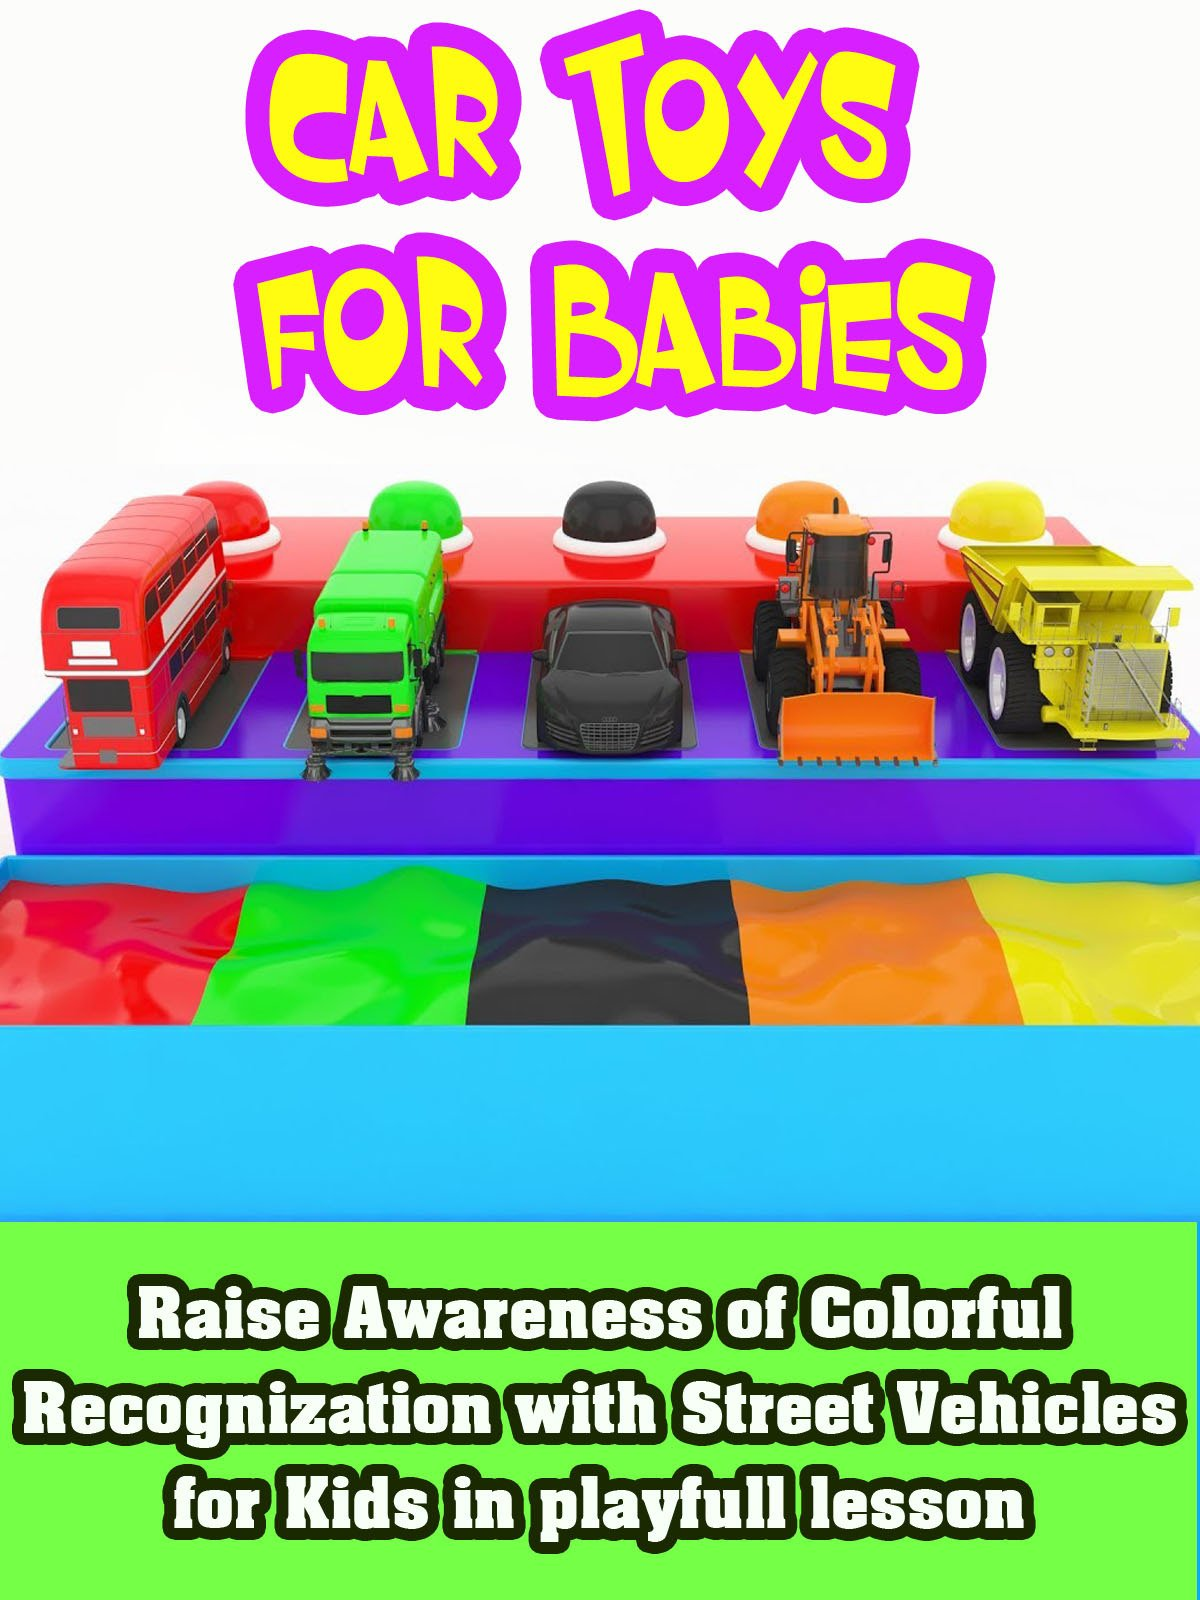 Raise Awareness of Colorful Recognization with Street Vehicles for Kids in playfull lesson